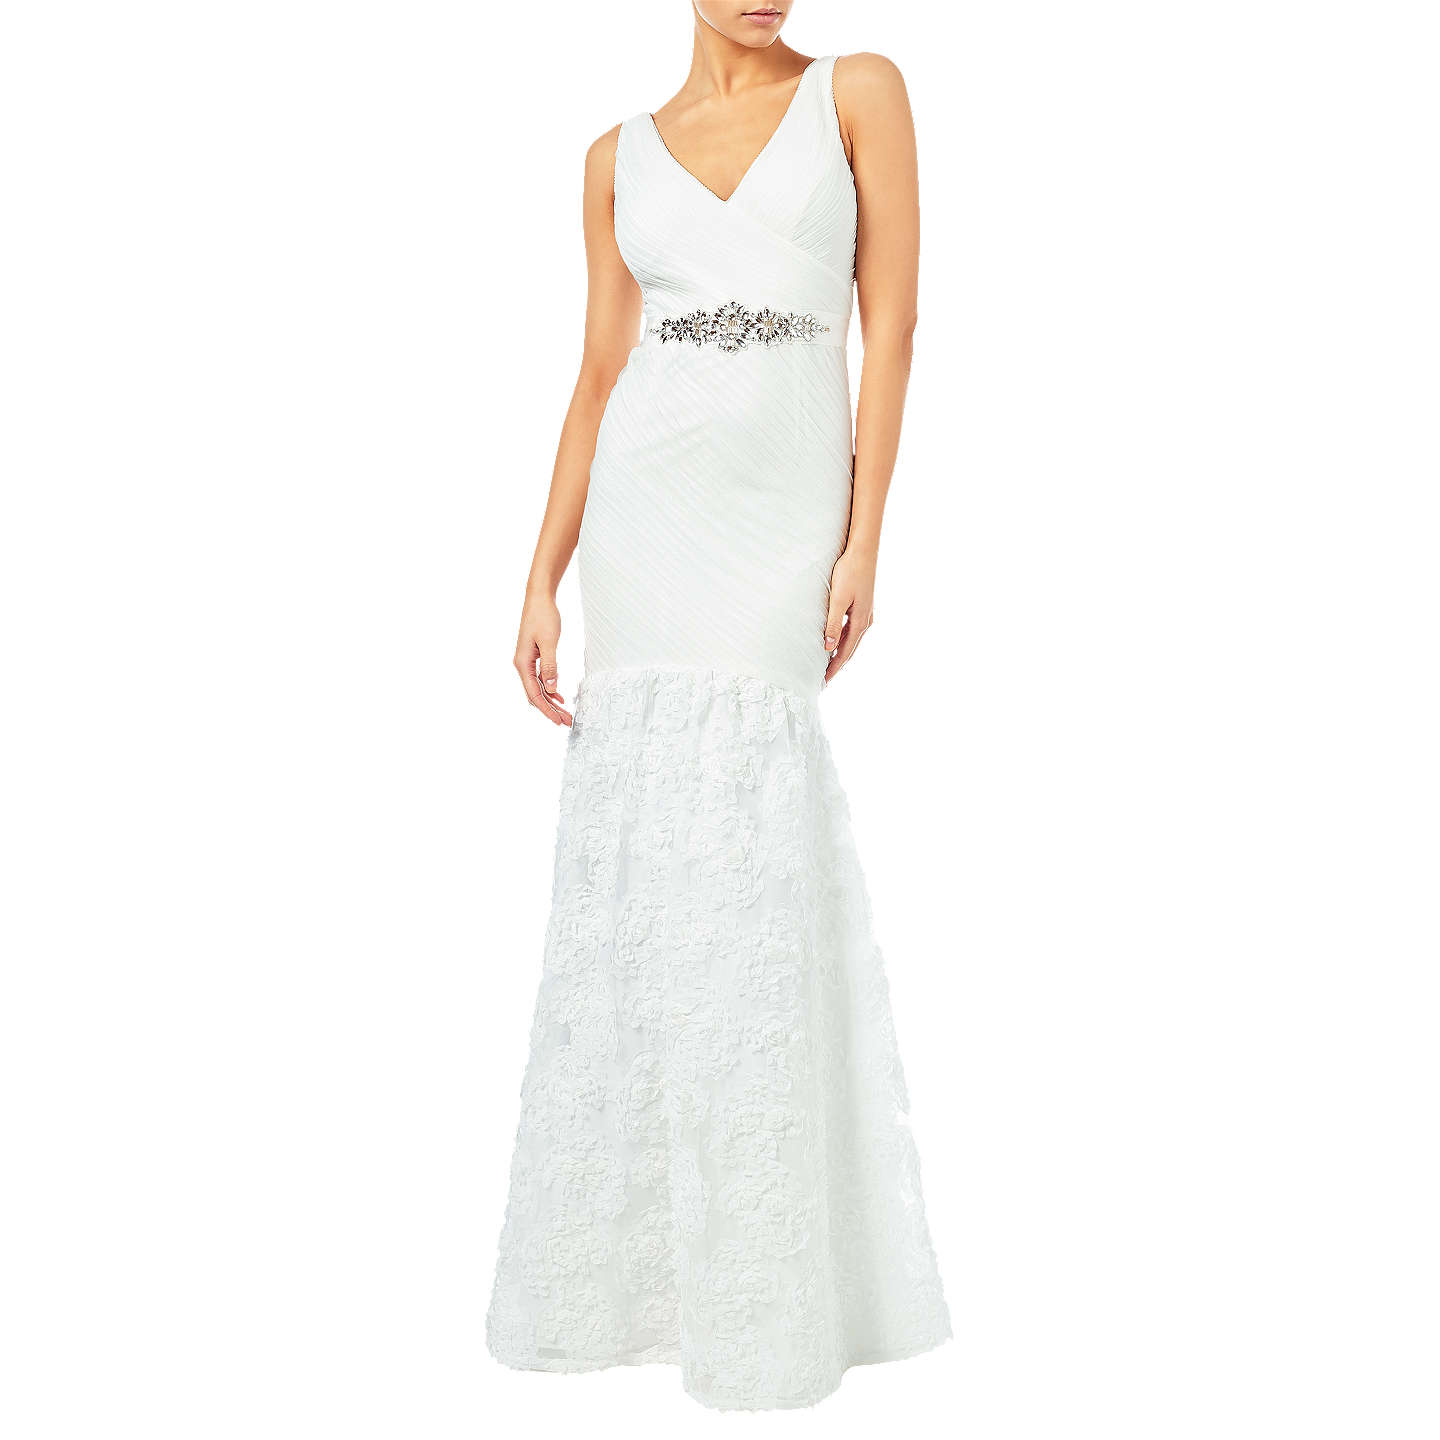 Adrianna Papell Sleeveless Tulle Chiffon Petal Gown, Ivory at John Lewis